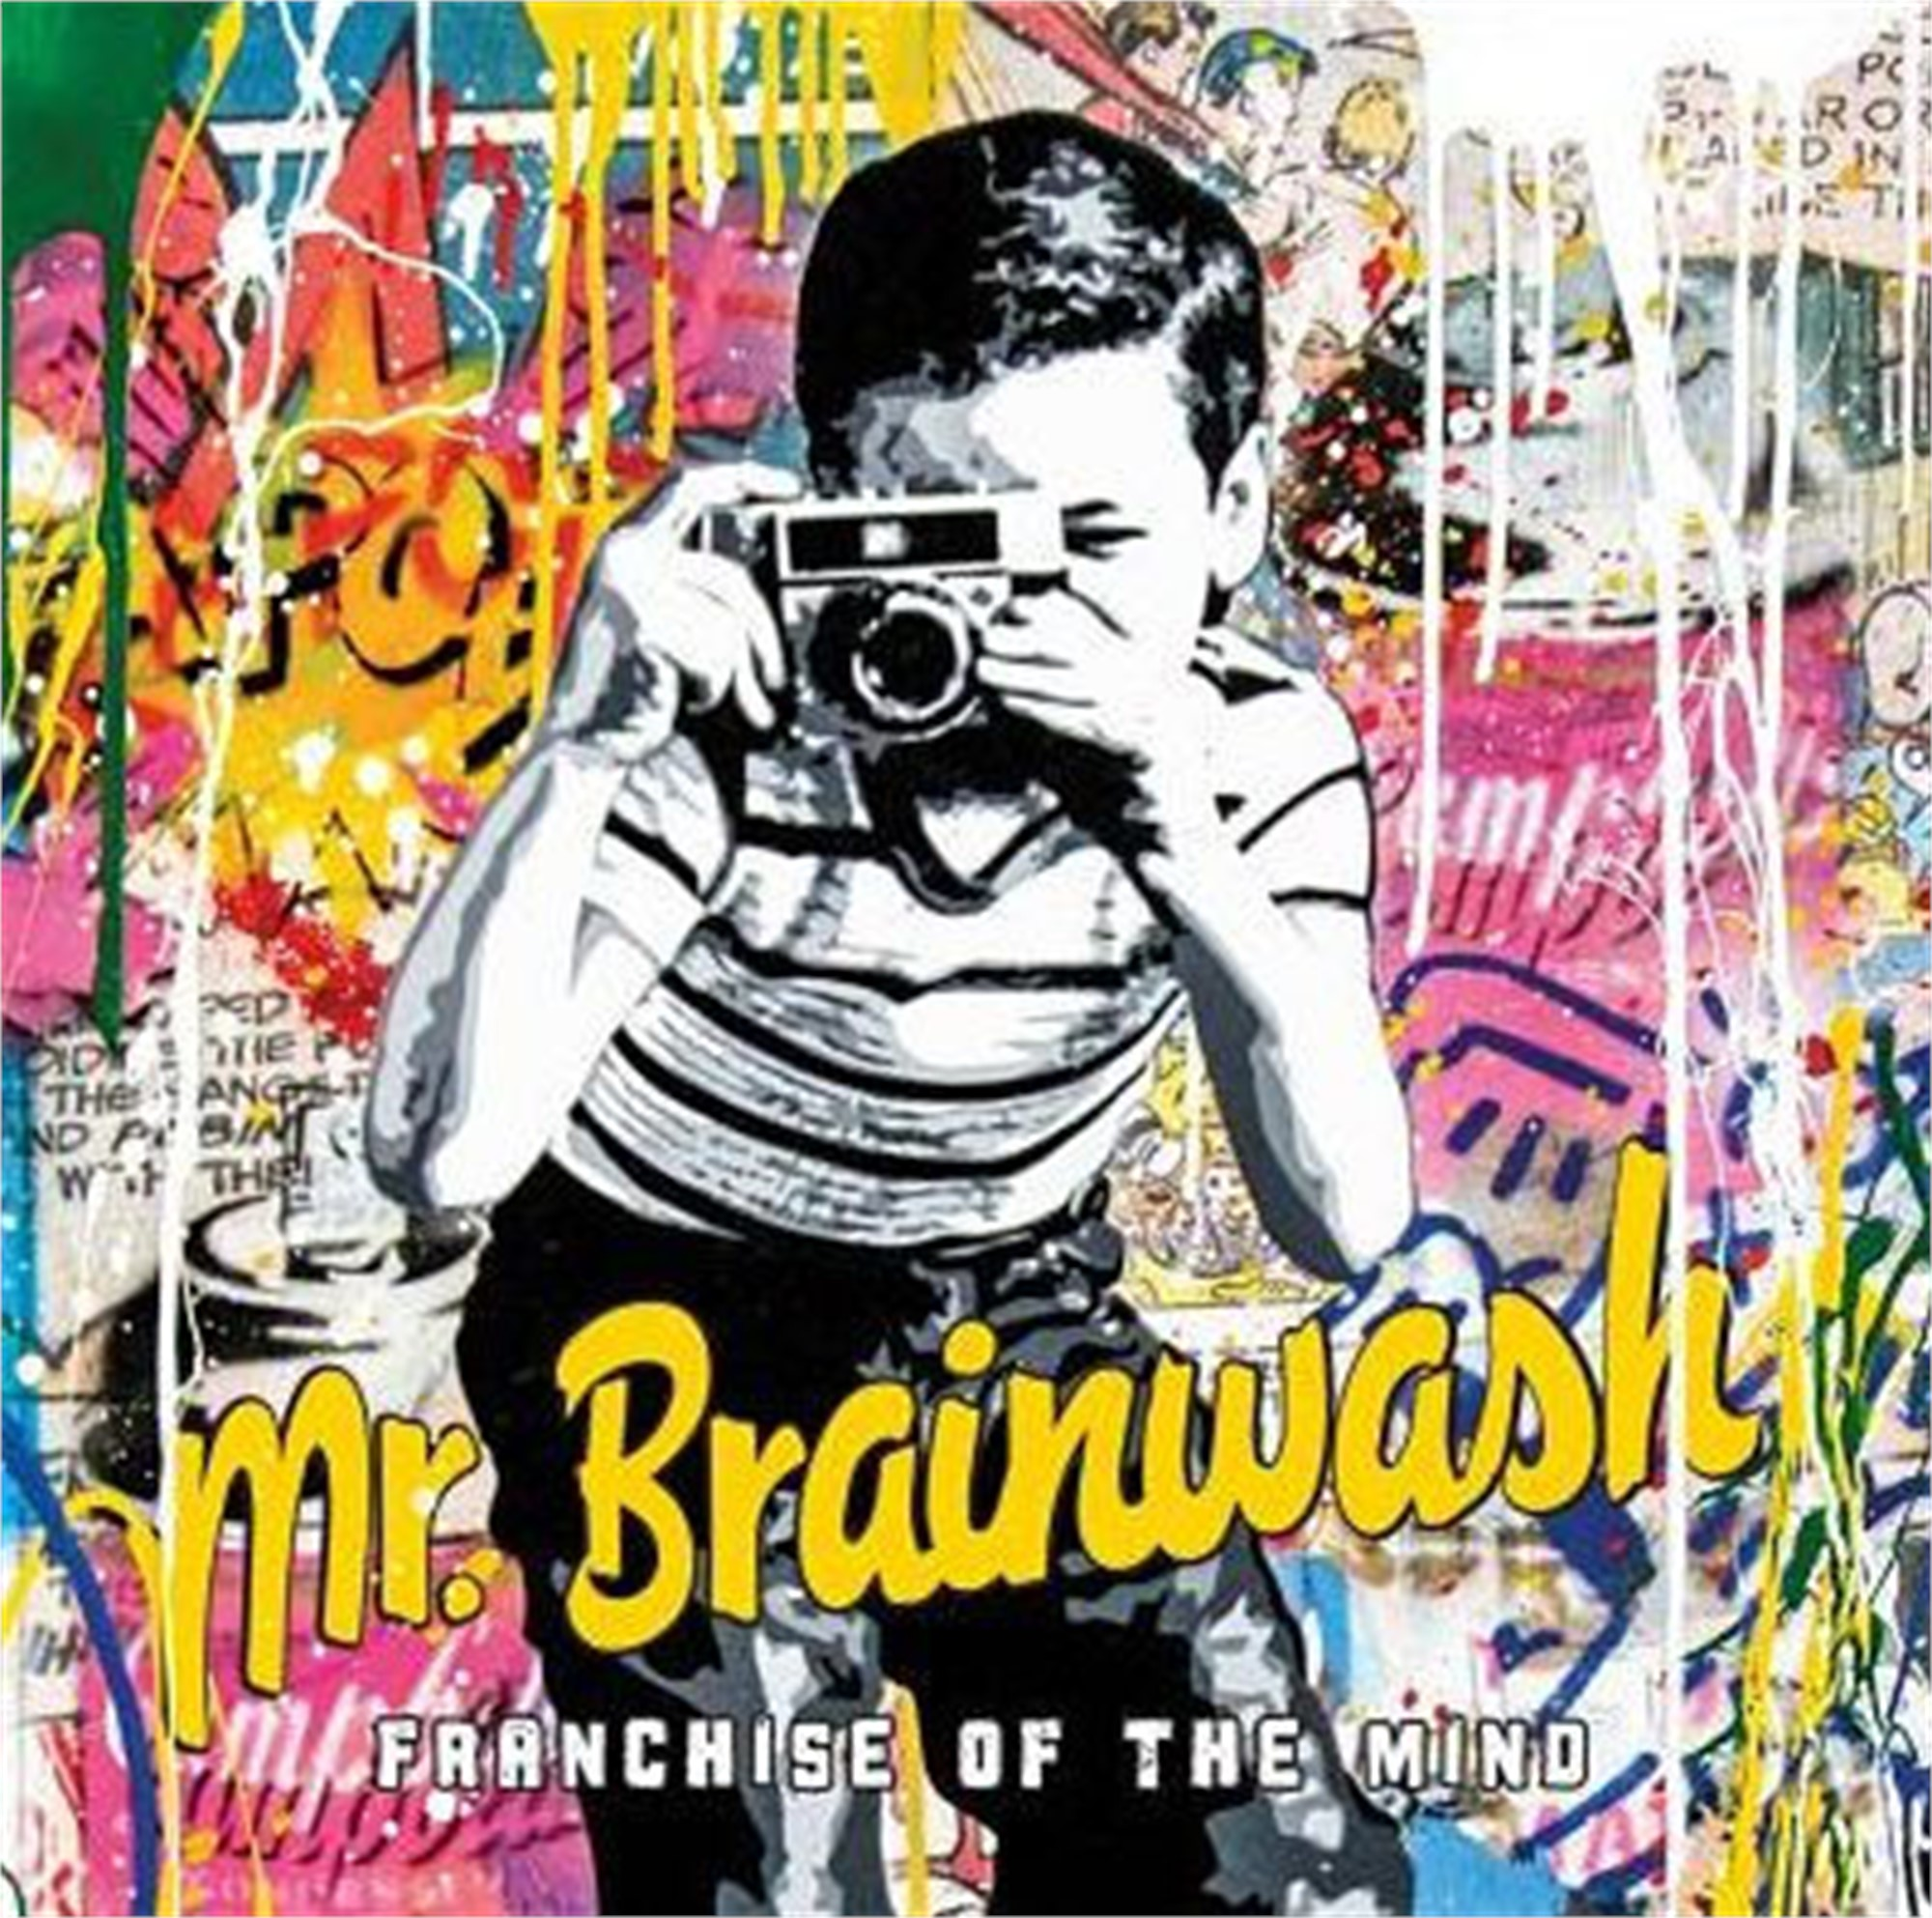 Franchise of the mind by Mr. Brainwash